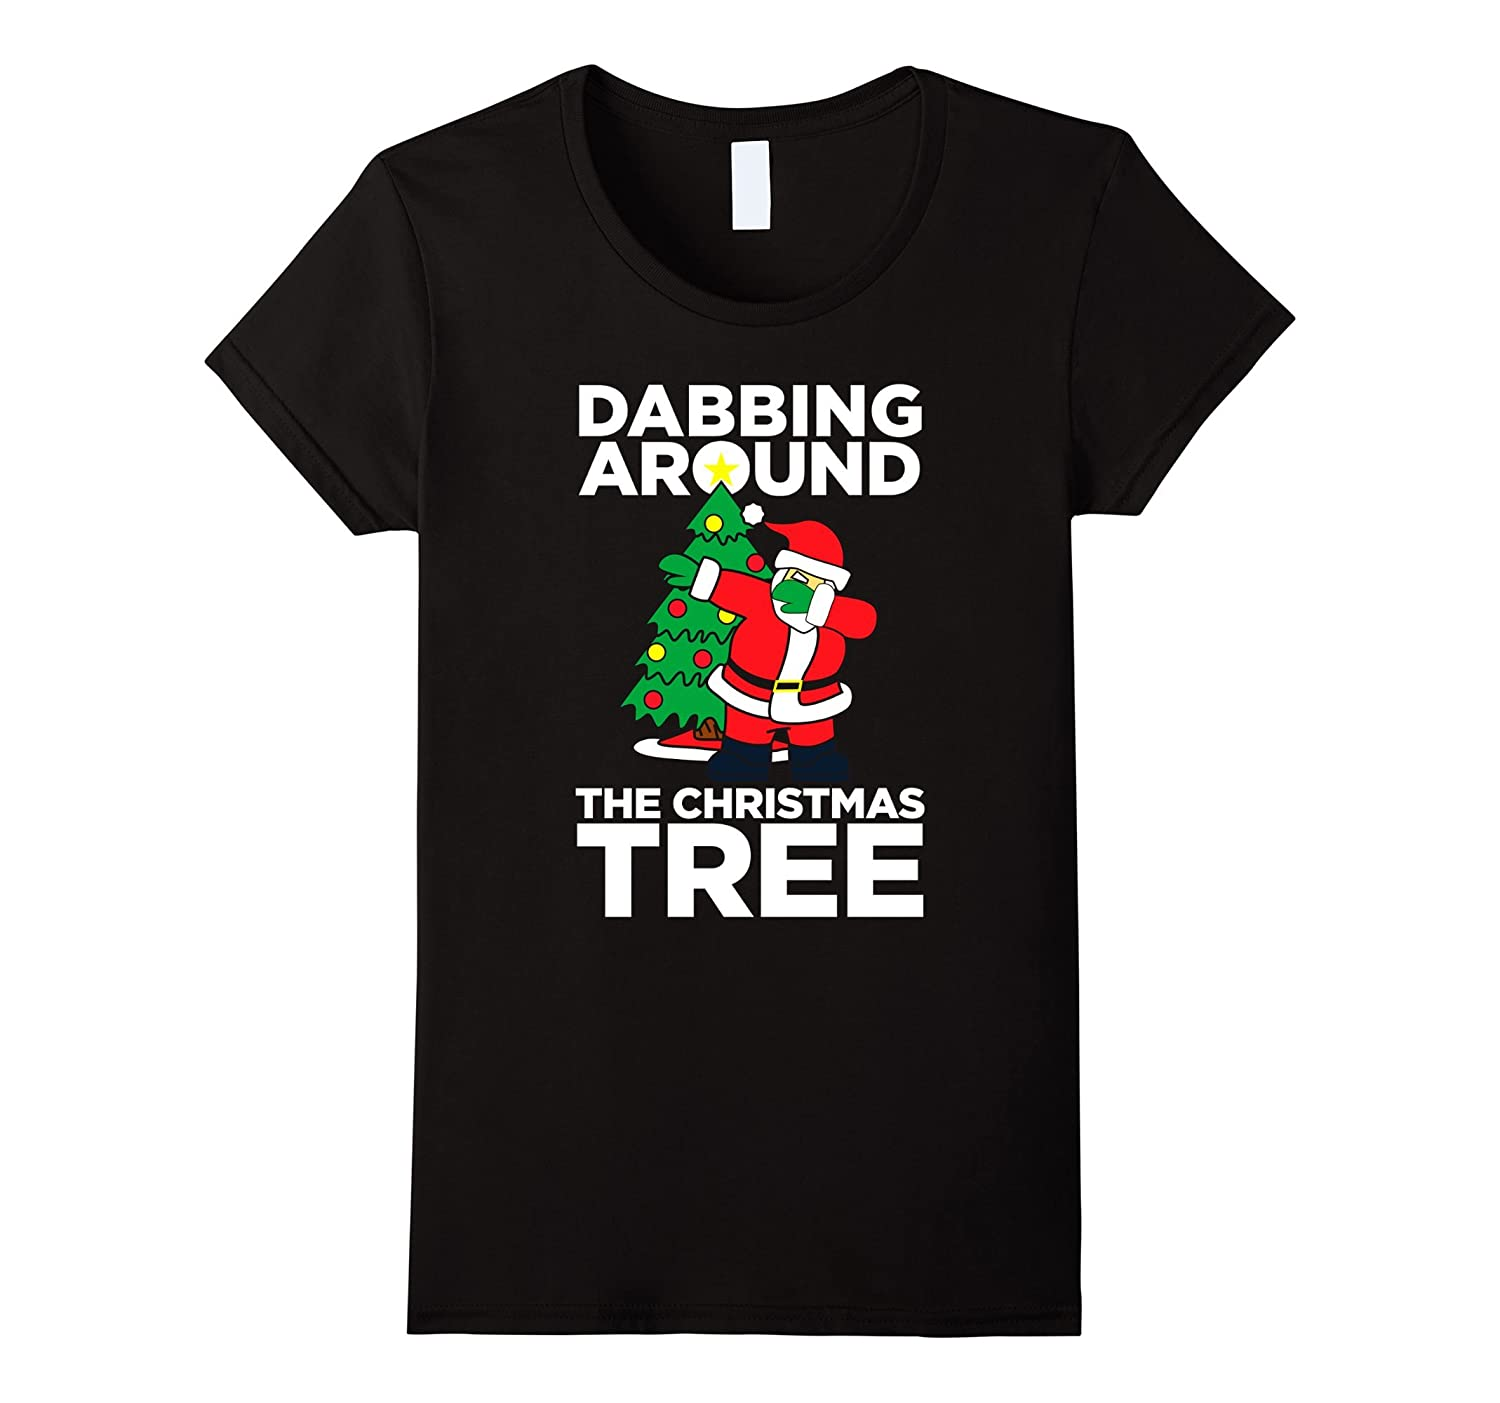 abbing Around The Christmas Tree T-Shirt